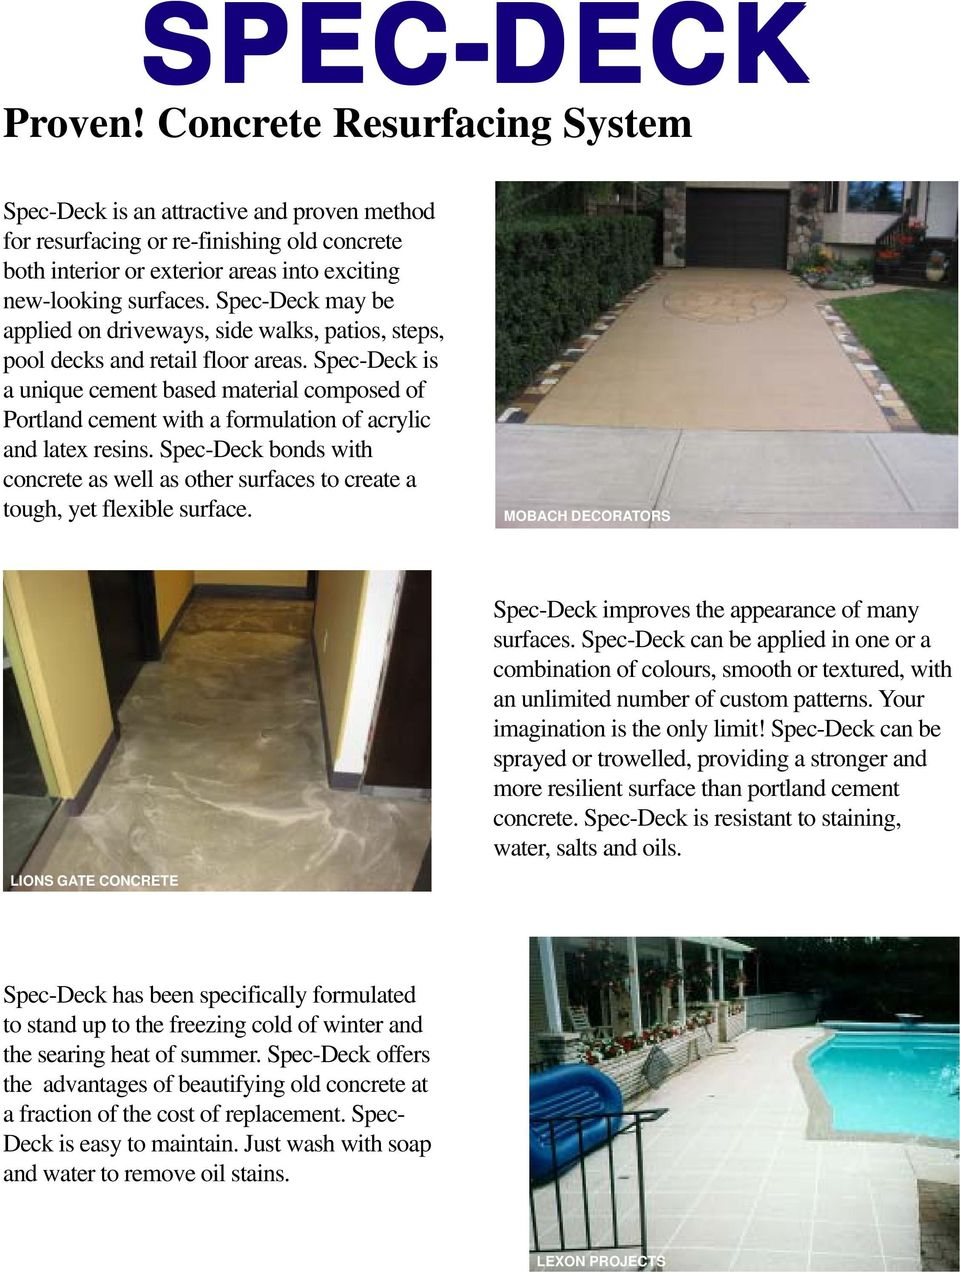 Spec-Deck may be applied on driveways, side walks, patios, steps, pool decks and retail floor areas.